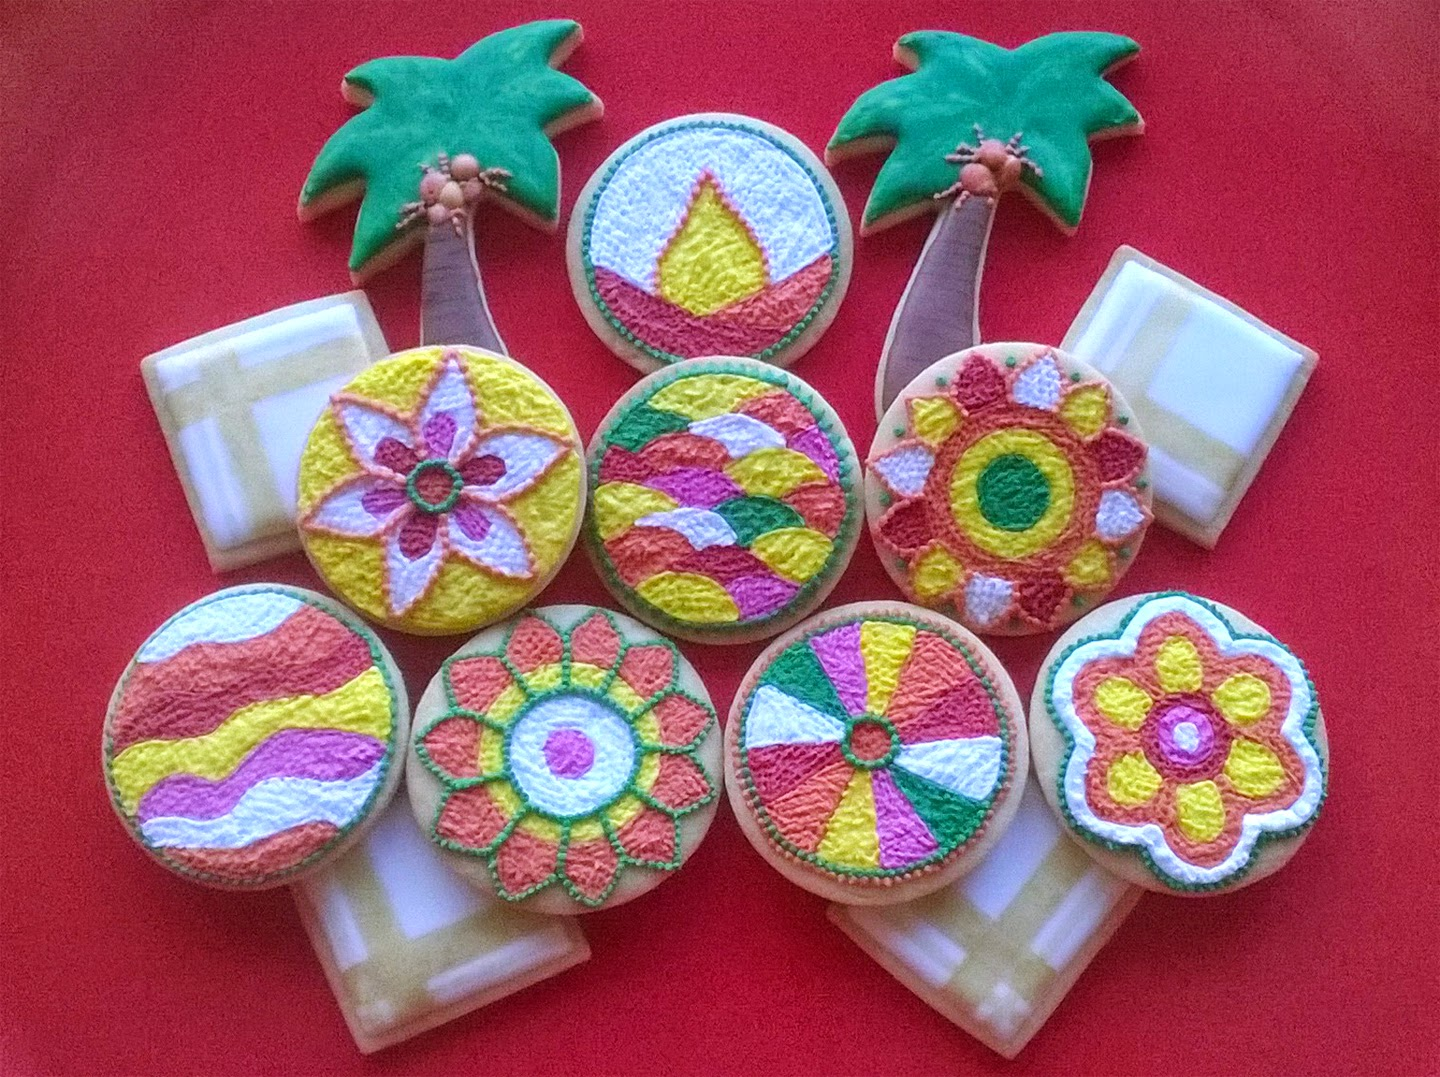 Kerala Inspired Decorated Cookies